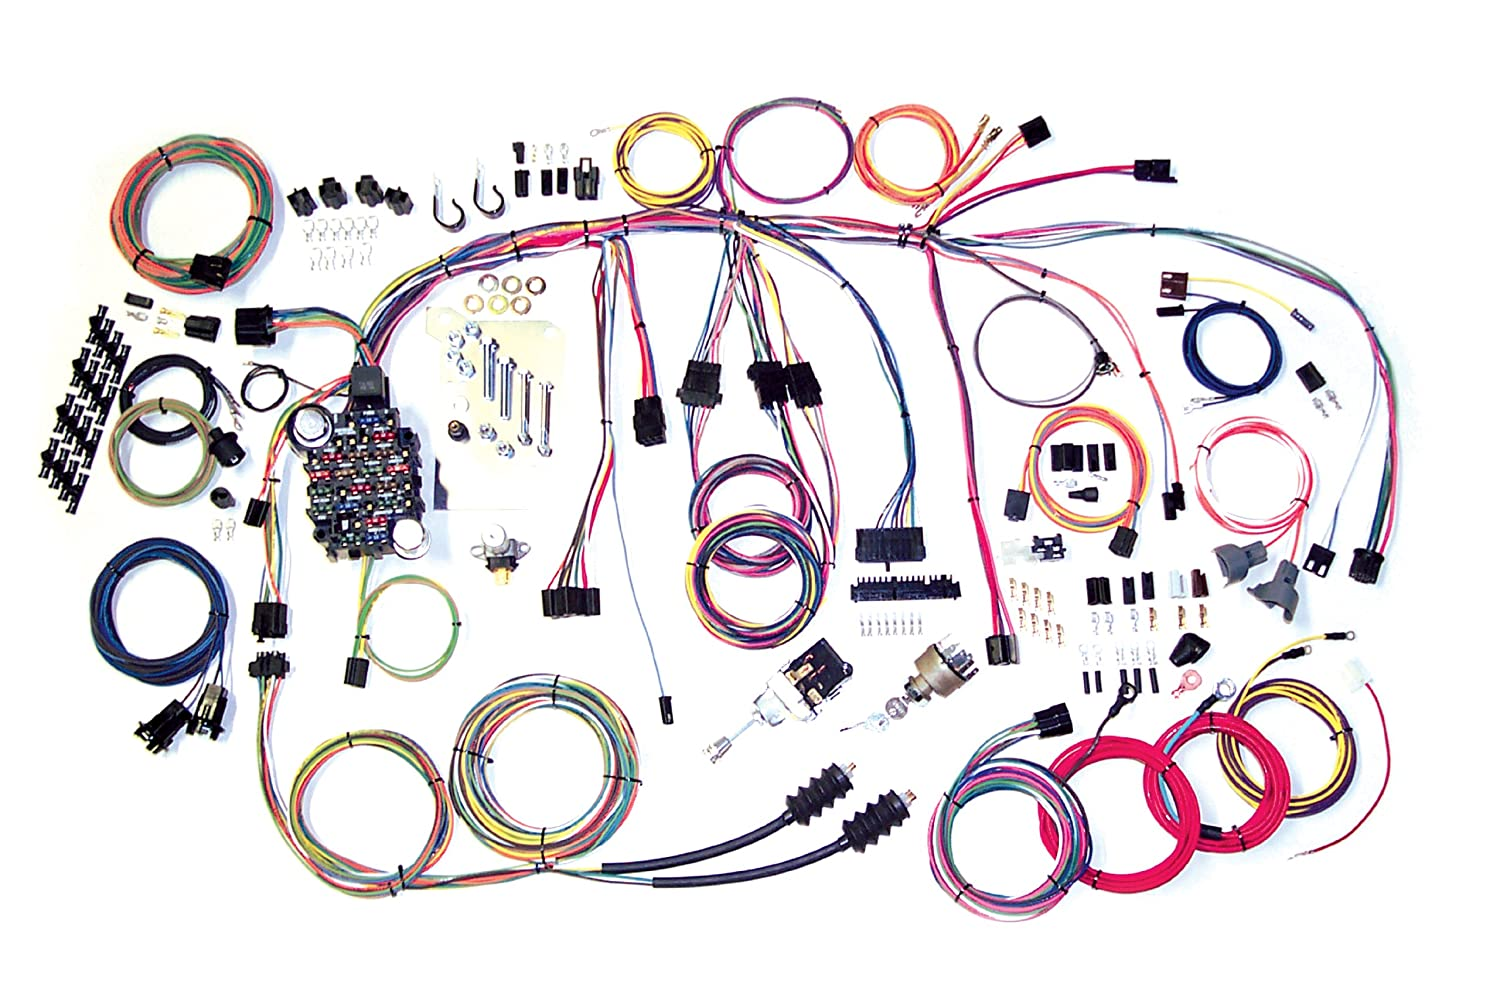 816T8GFu4LL._SL1500_ amazon com american autowire 500560 truck wiring harness for 60 1964 chevy c10 wiring harness at n-0.co